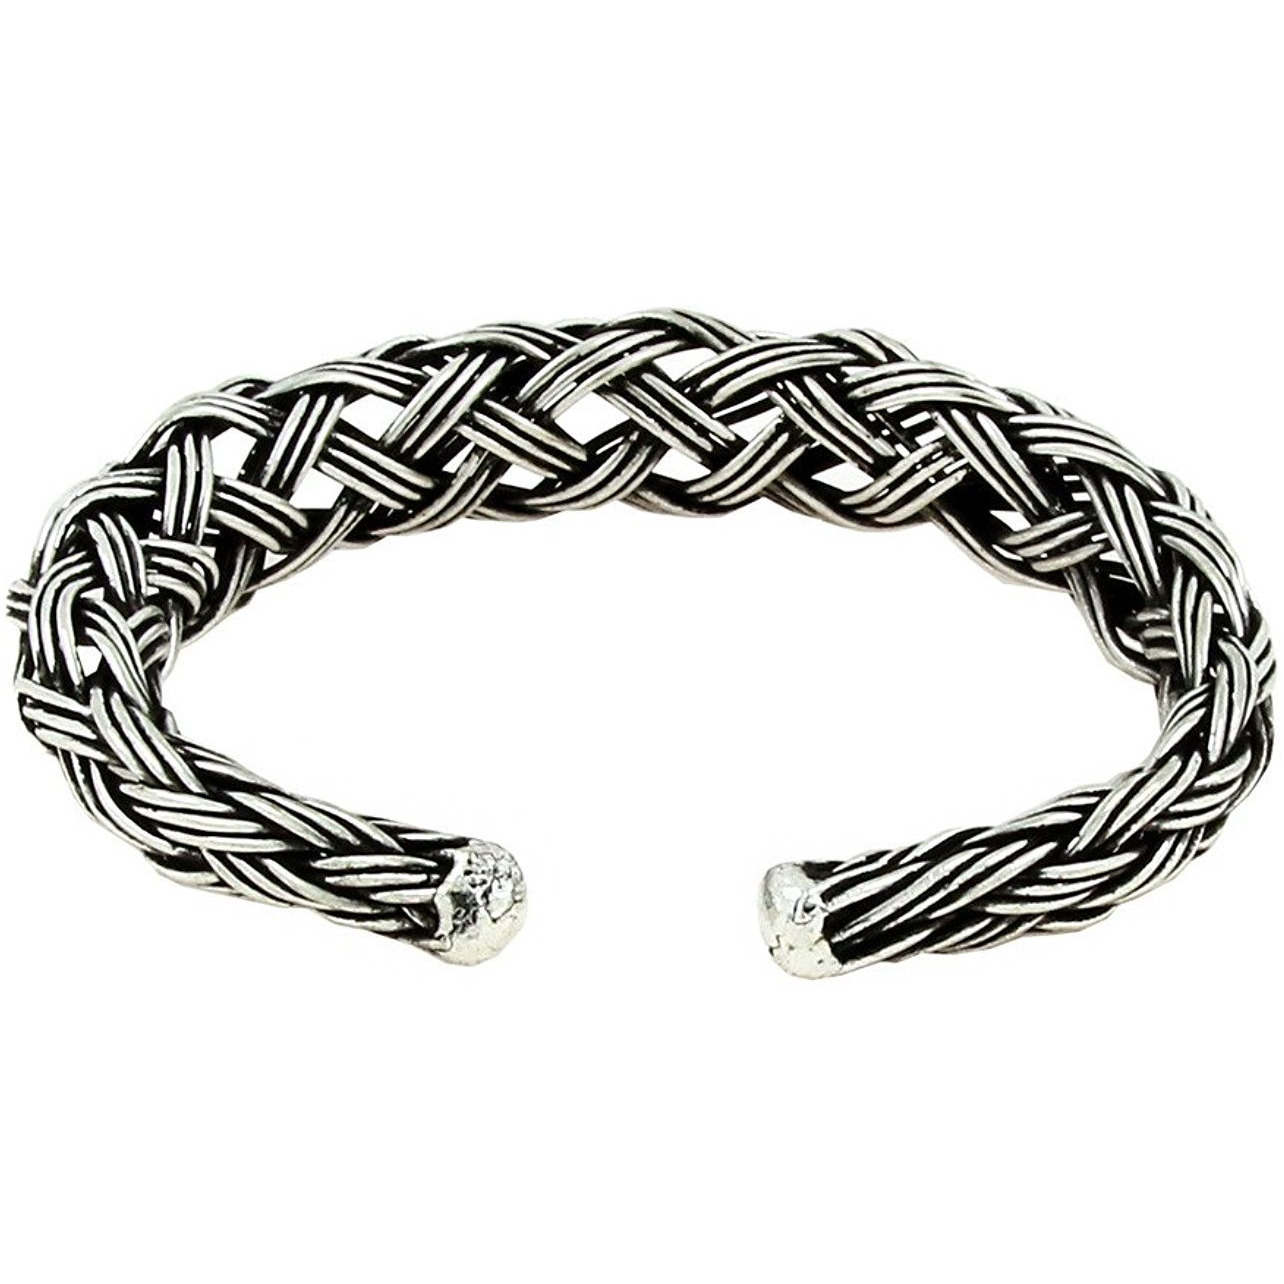 Zivom Antique Vintage Oxidized Cuff Bracelet + Tribal Bohemian Hasli Choker Necklace Combo For Womens